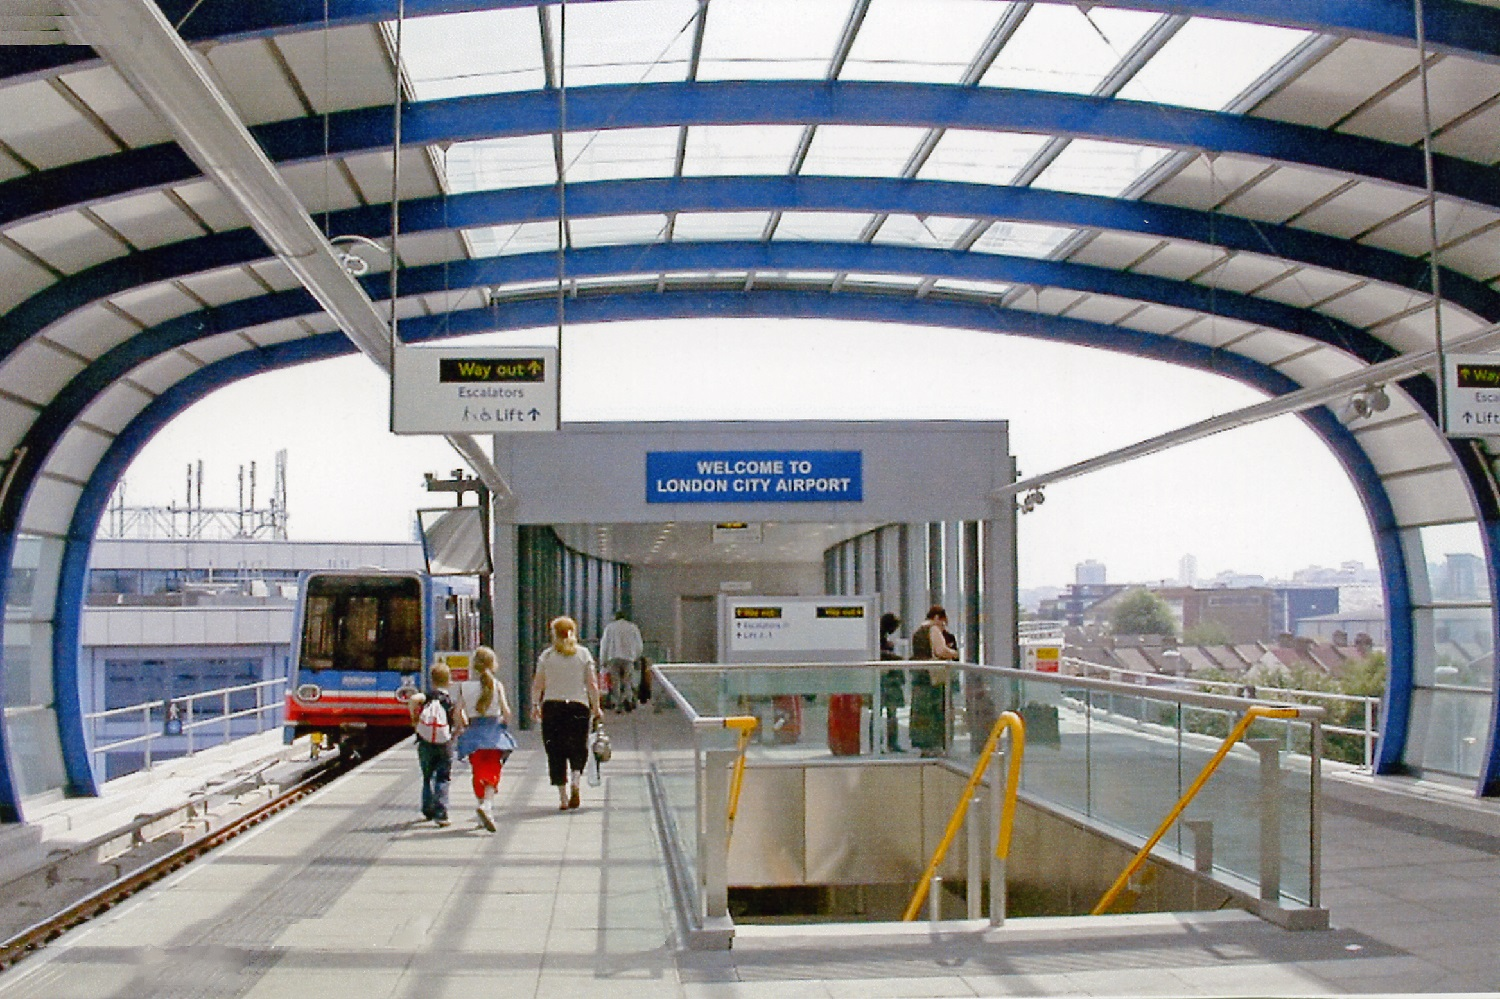 Image of City Airport DLR Station platform.